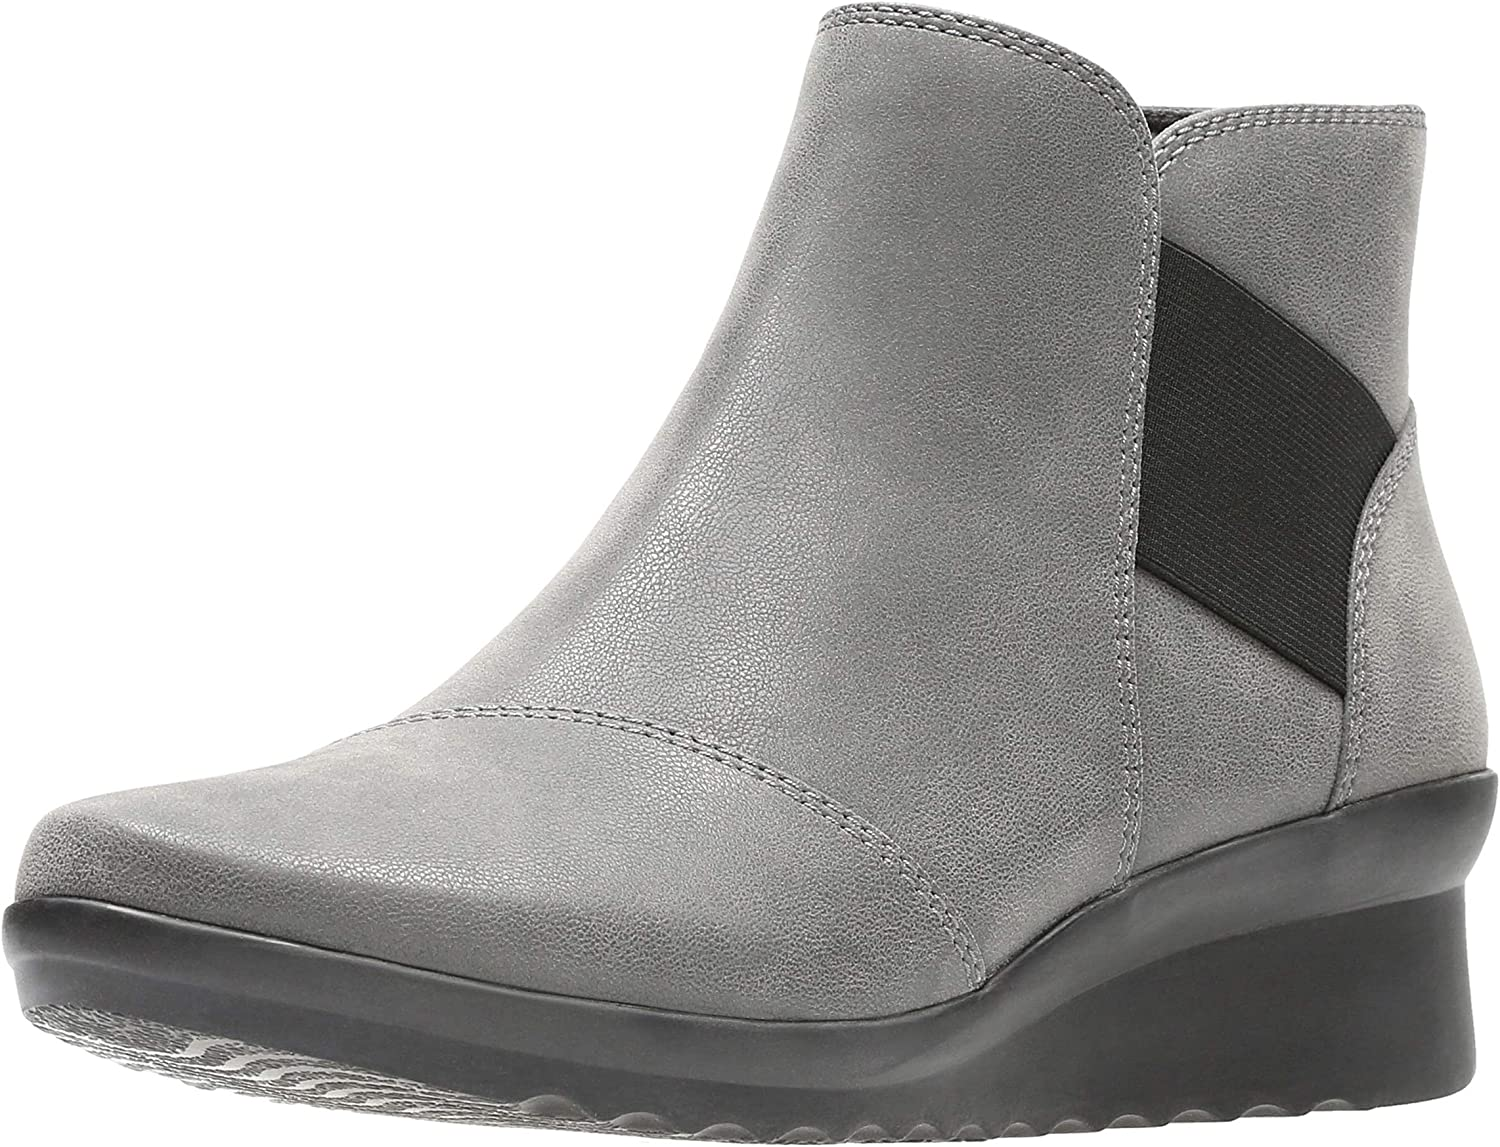 Clarks Women's Caddell Tropic Ankle Bootie